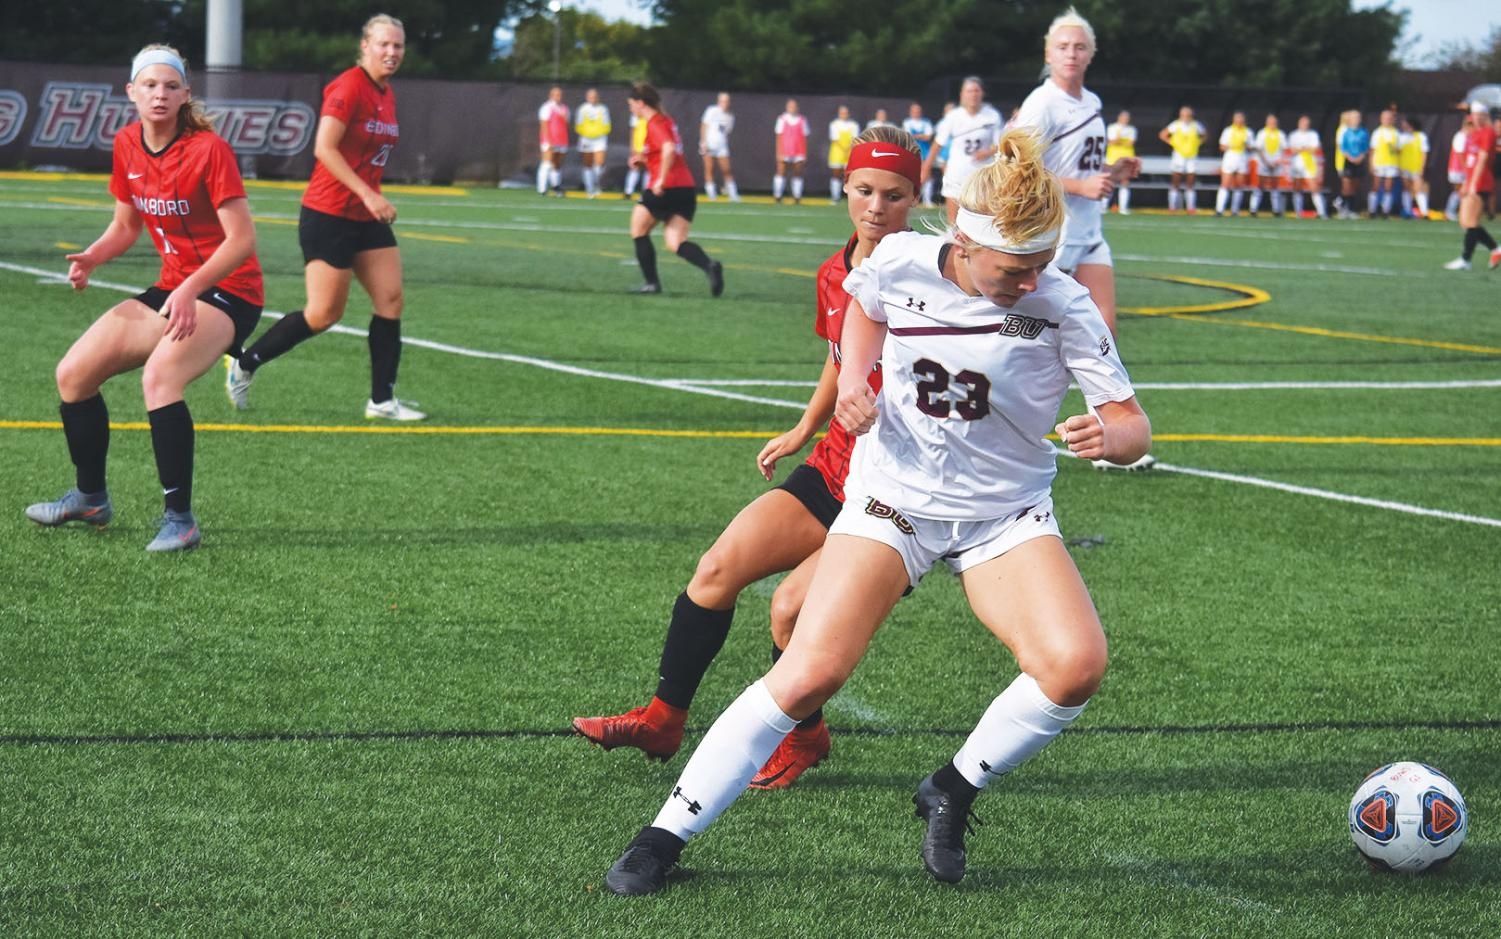 Mindfielder Kimmy Bucher (23) looks to find an opening to make a quick pass during   their match against Edinboro on Sept. 5.